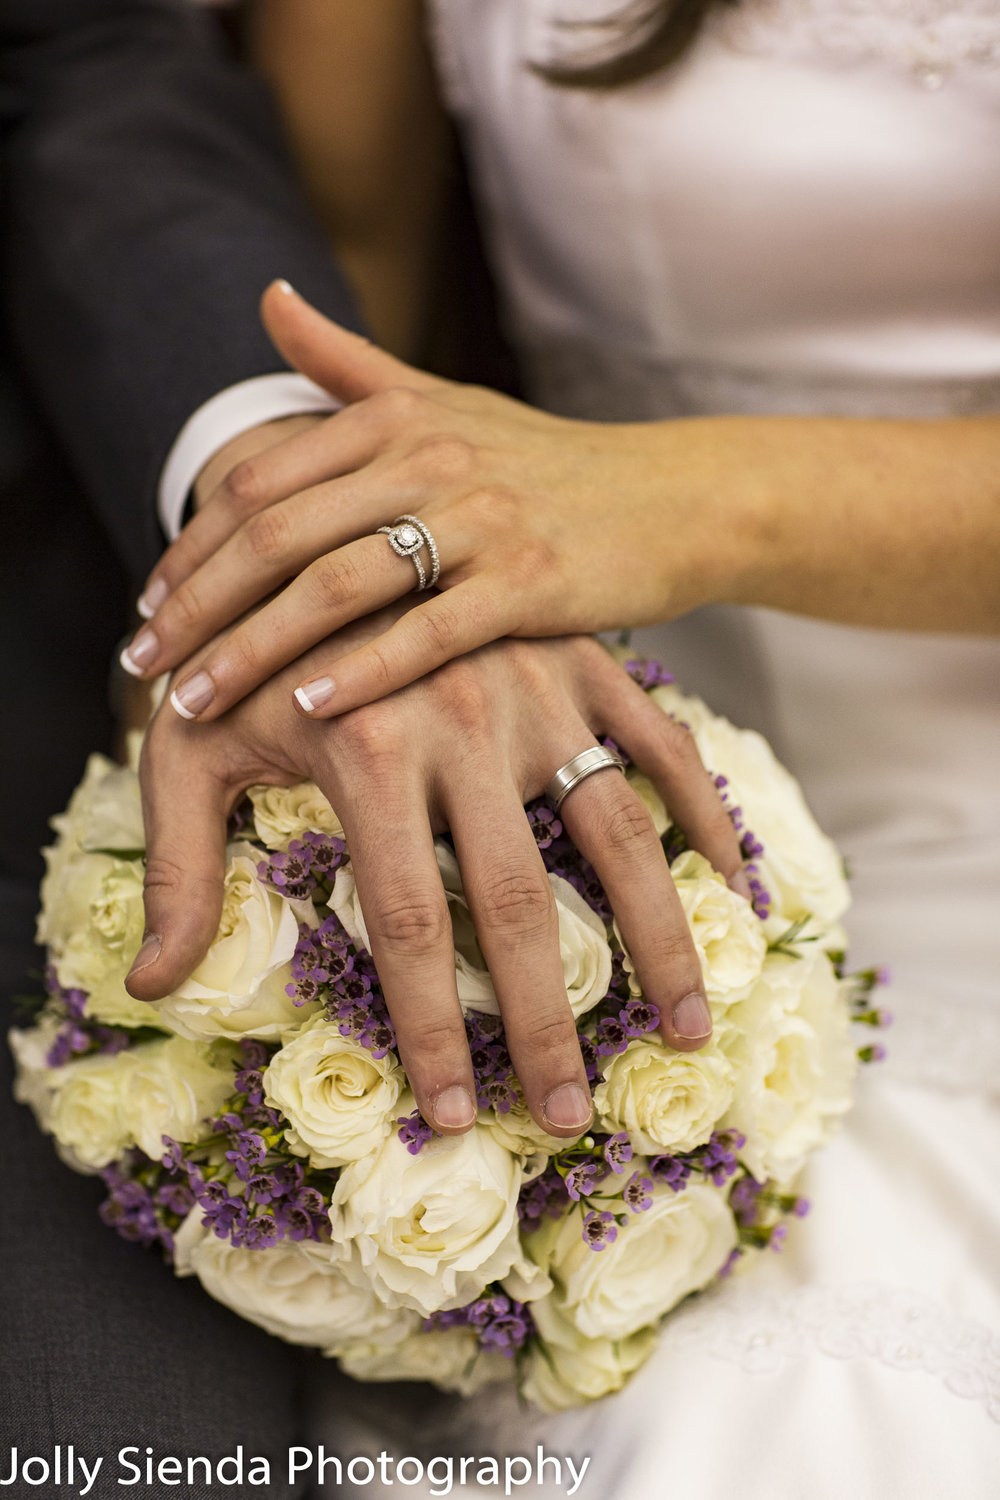 Hands clasped with his and her diamond wedding rings over weddin